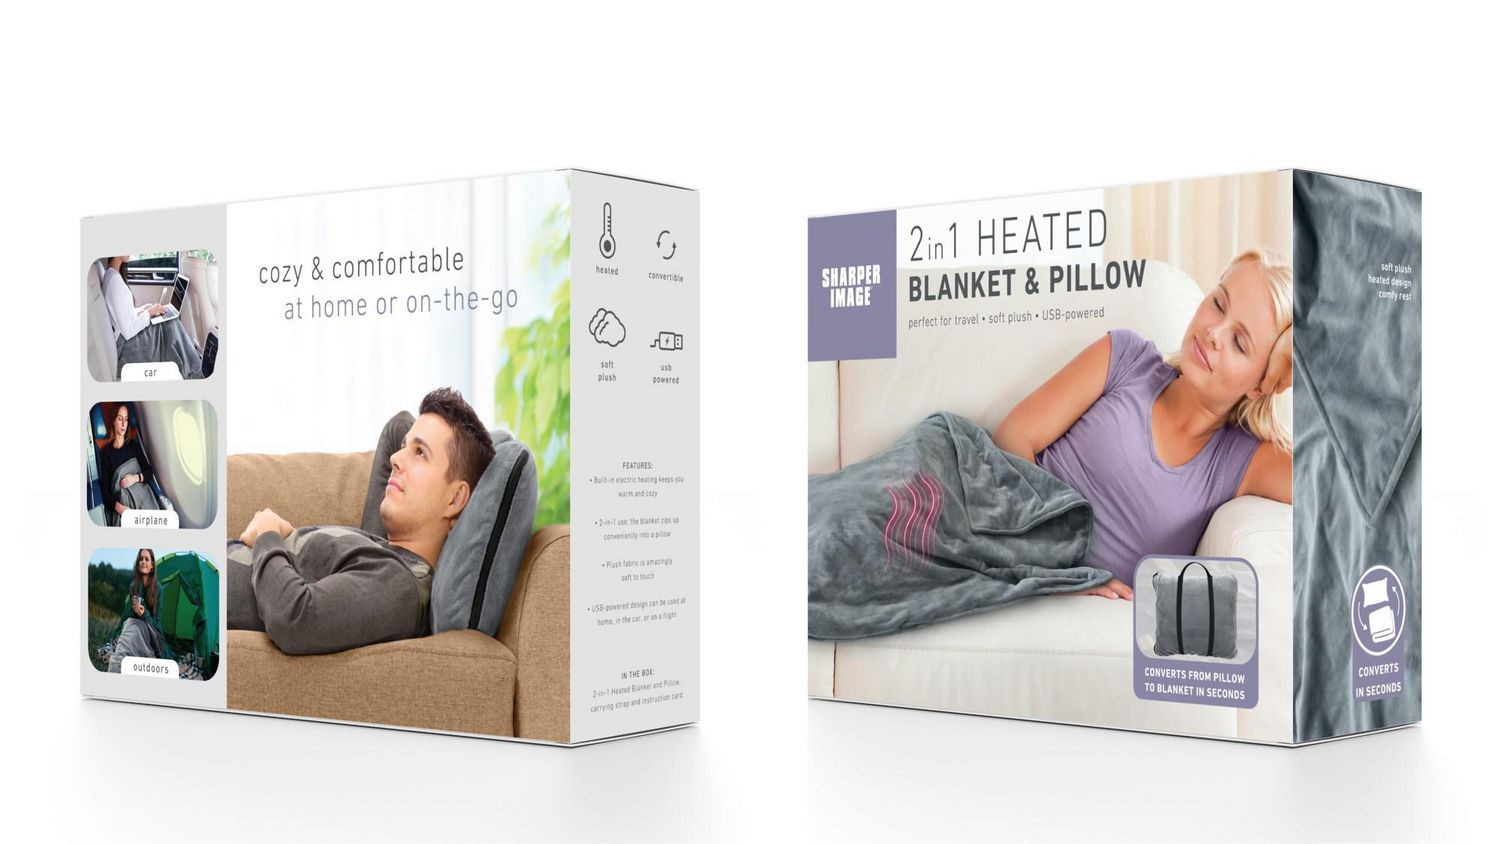 sharper image 2 in 1 heated blanket and